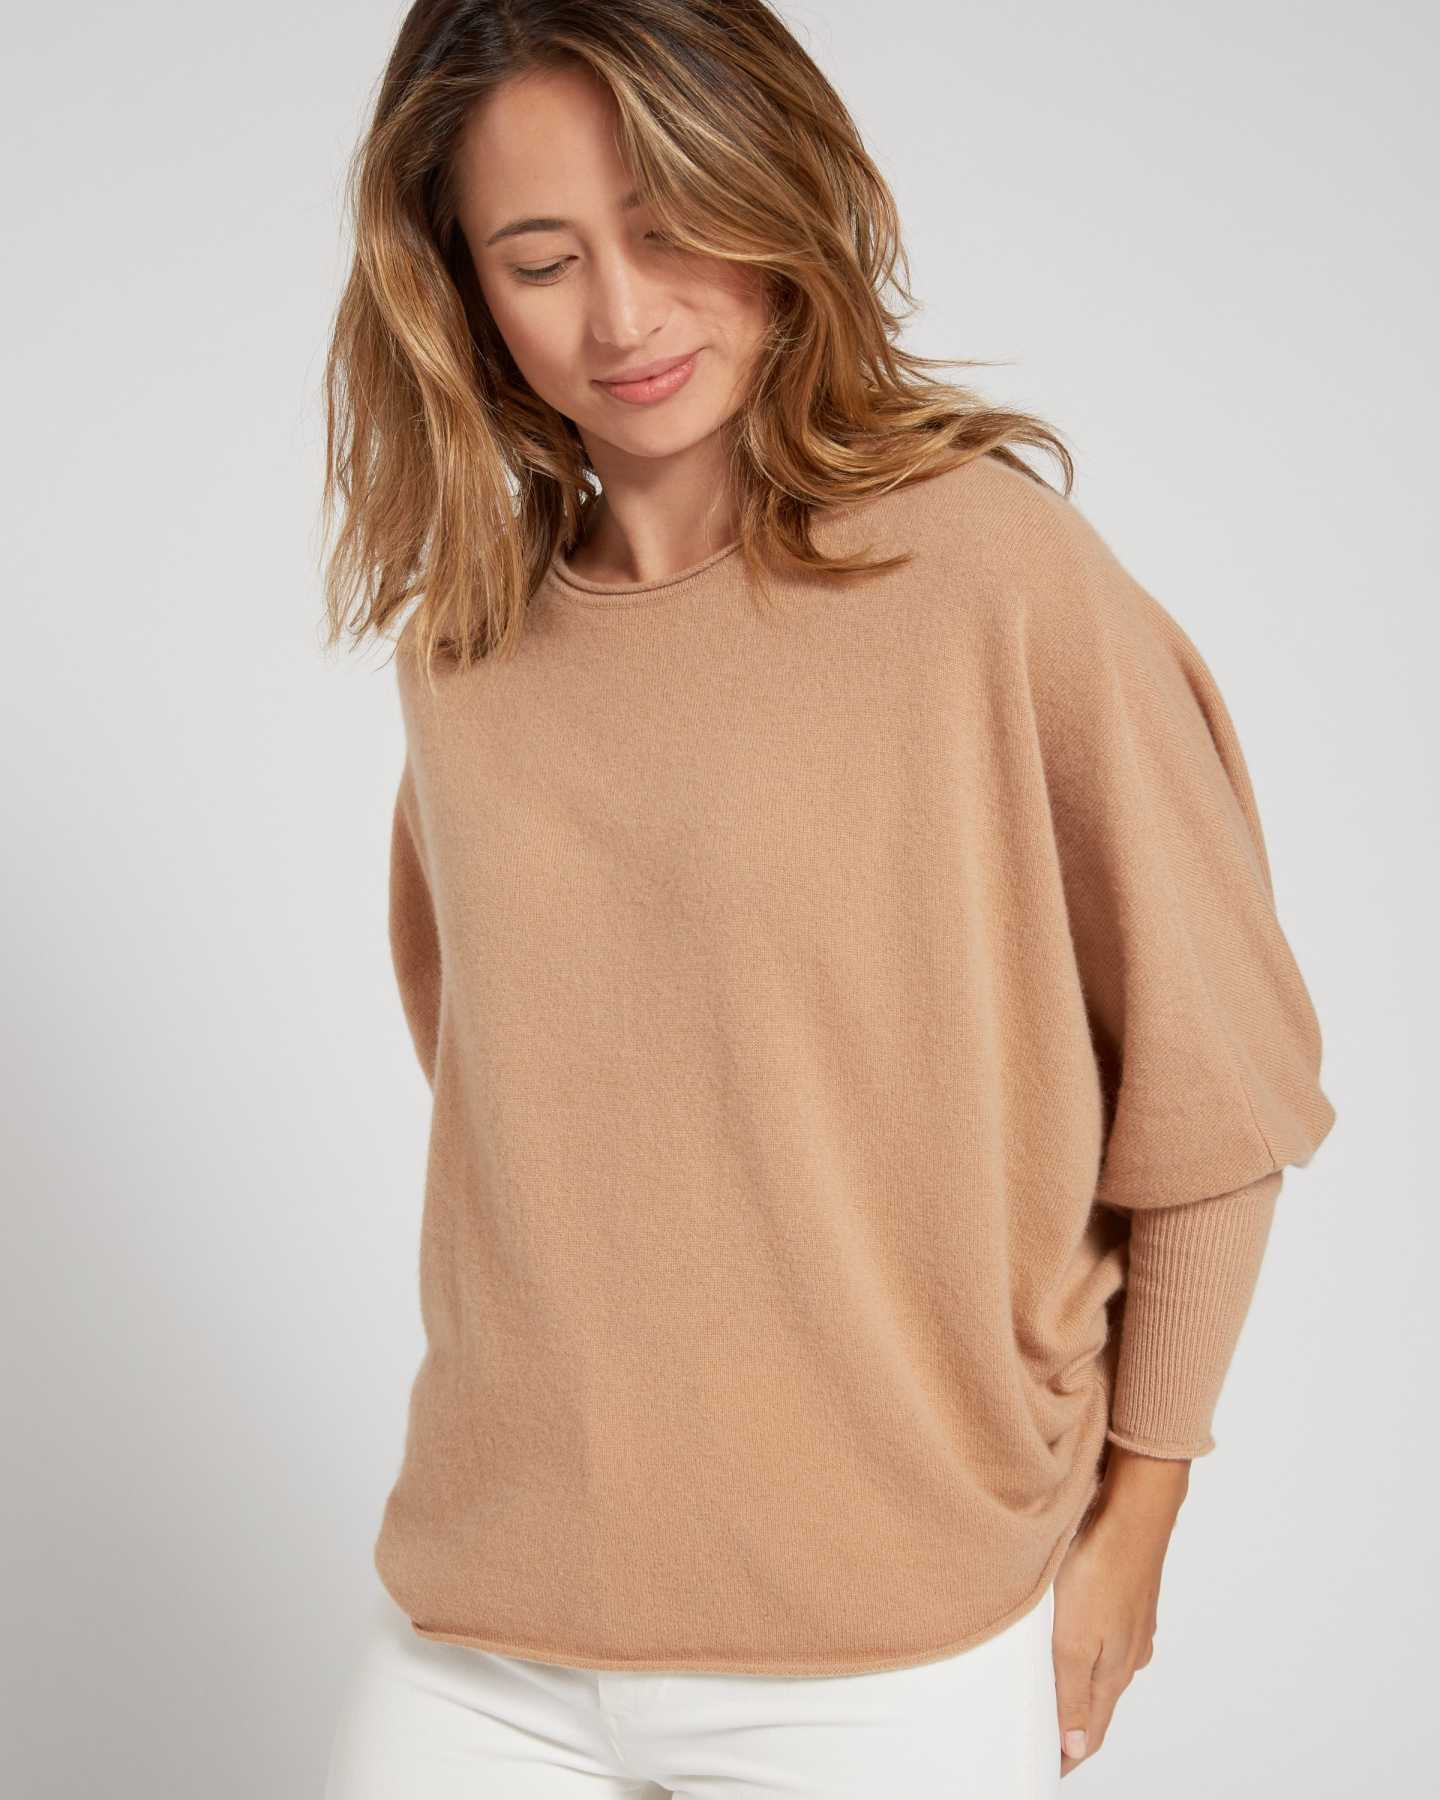 Woman wearing batwing sweater made from cashmere in camel